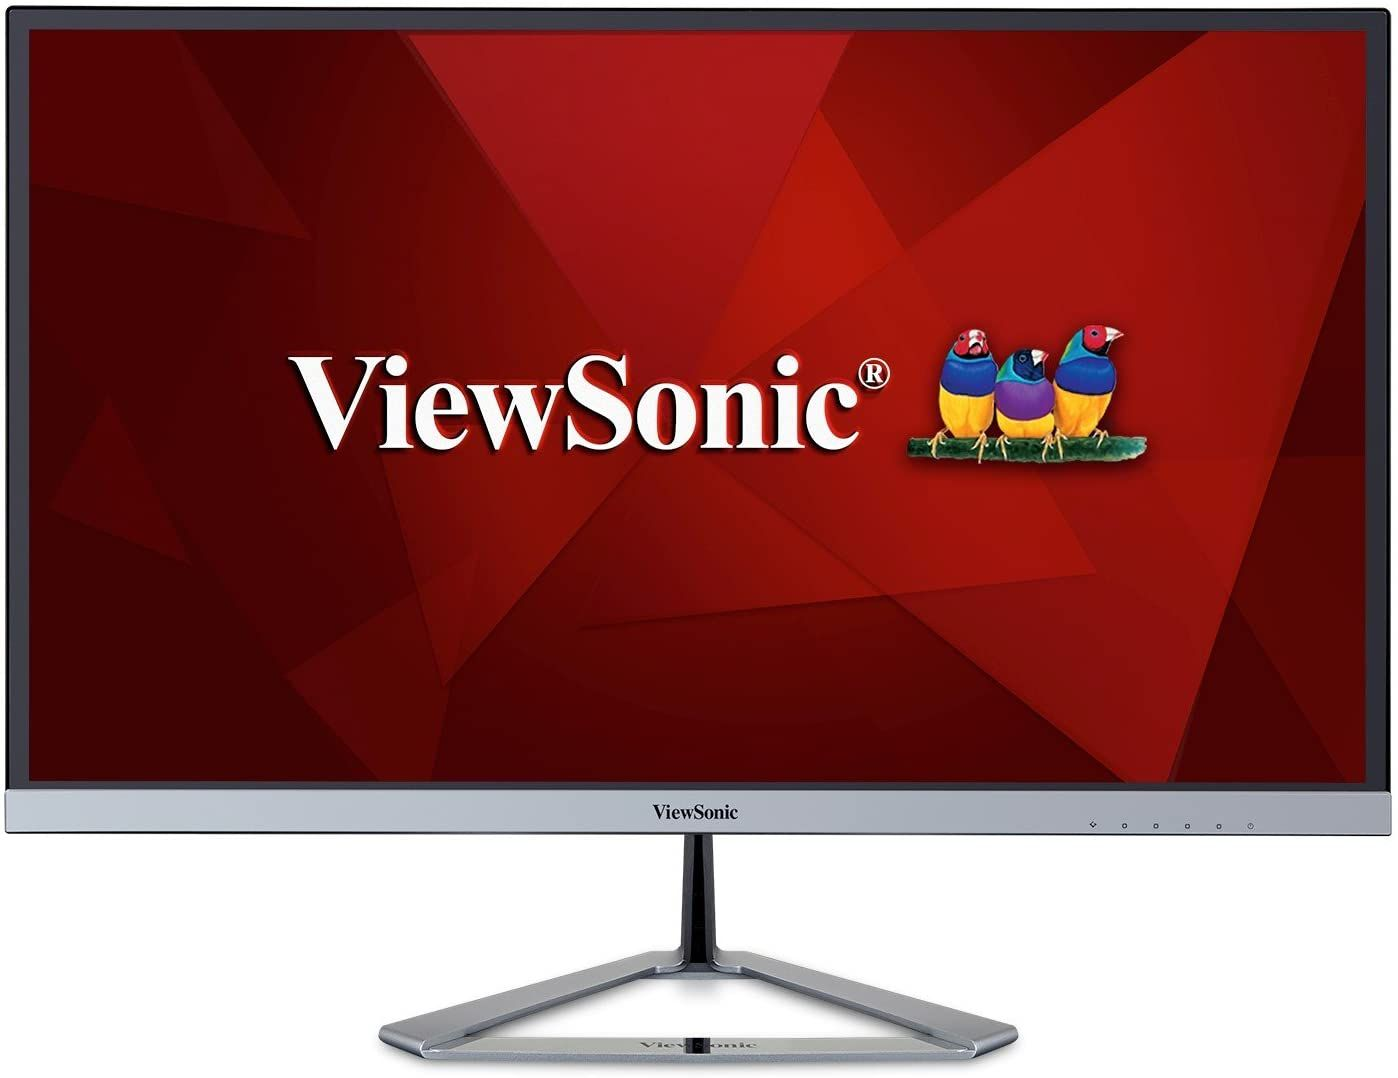 ViewSonic VX2776-SMHD - best monitor for watching movies